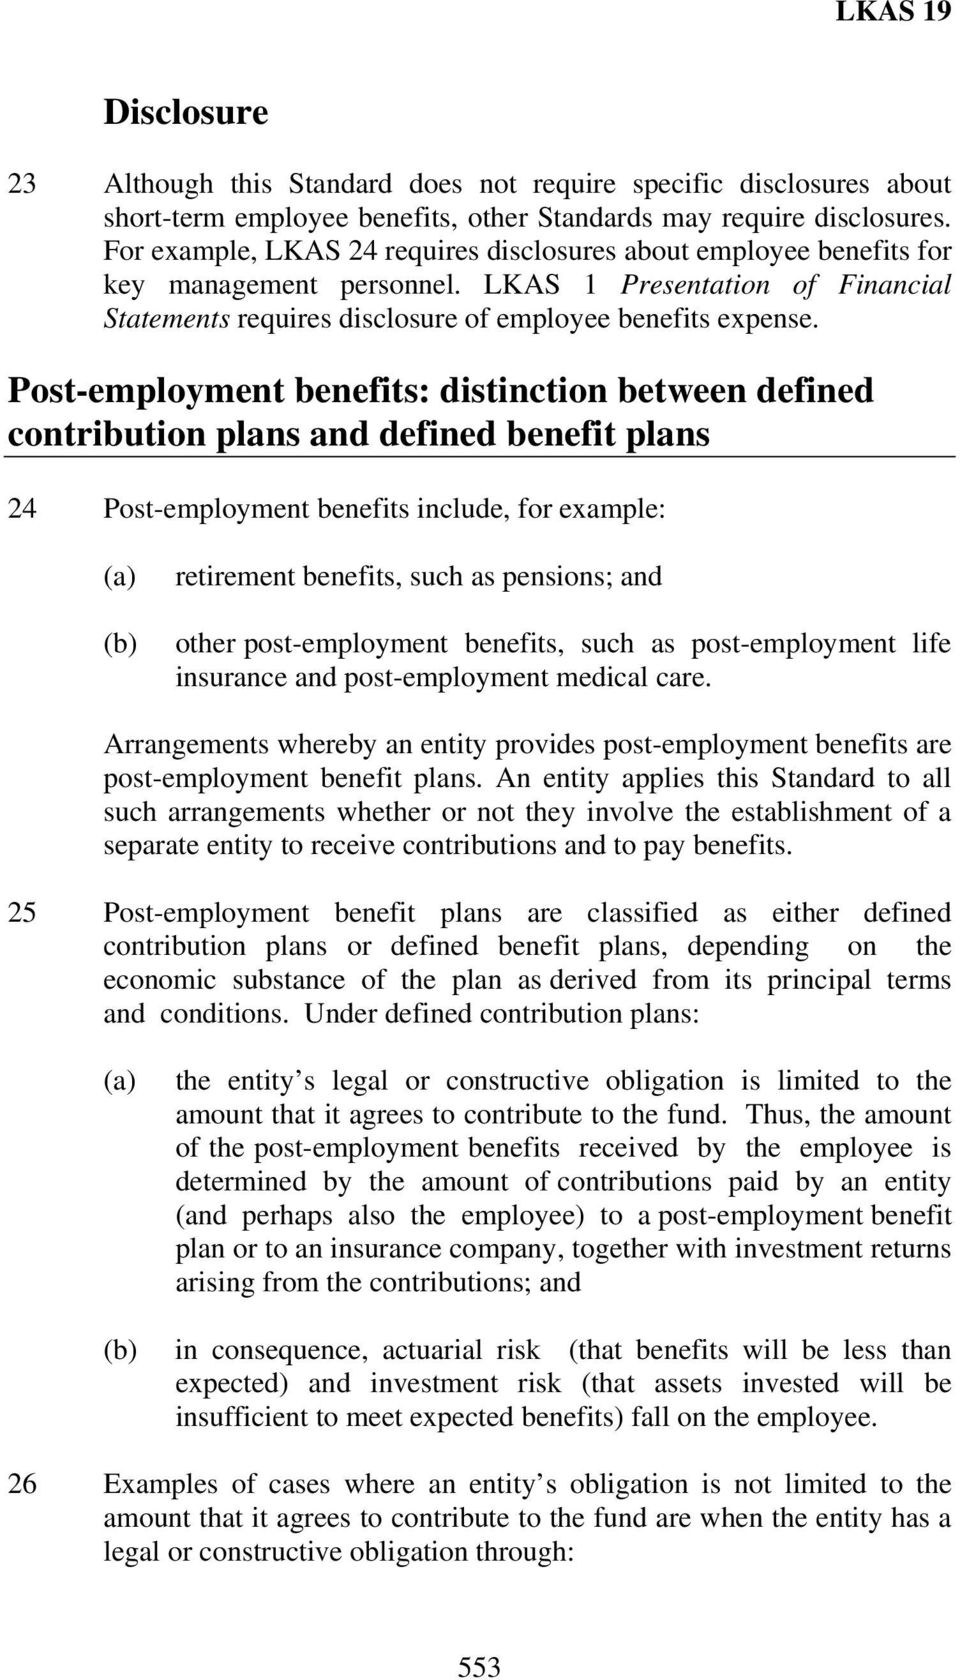 Post-employment benefits: distinction between defined contribution plans and defined benefit plans 24 Post-employment benefits include, for example: retirement benefits, such as pensions; and other